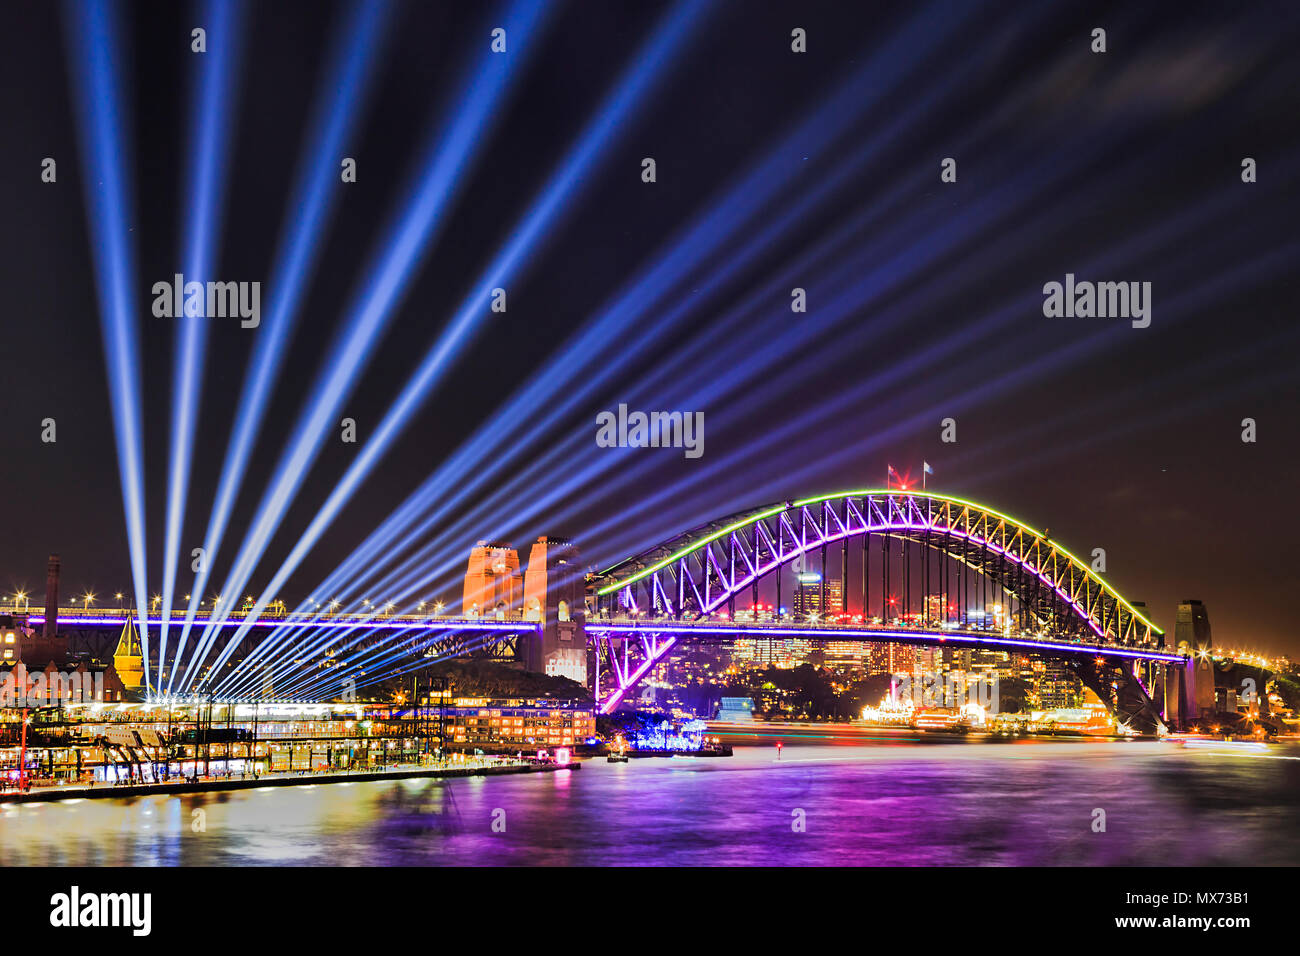 Vivid sydney festival of light and ideas in Sydney city CBD around Harbour with light beams off the Harbour bridge from circular Quay. - Stock Image